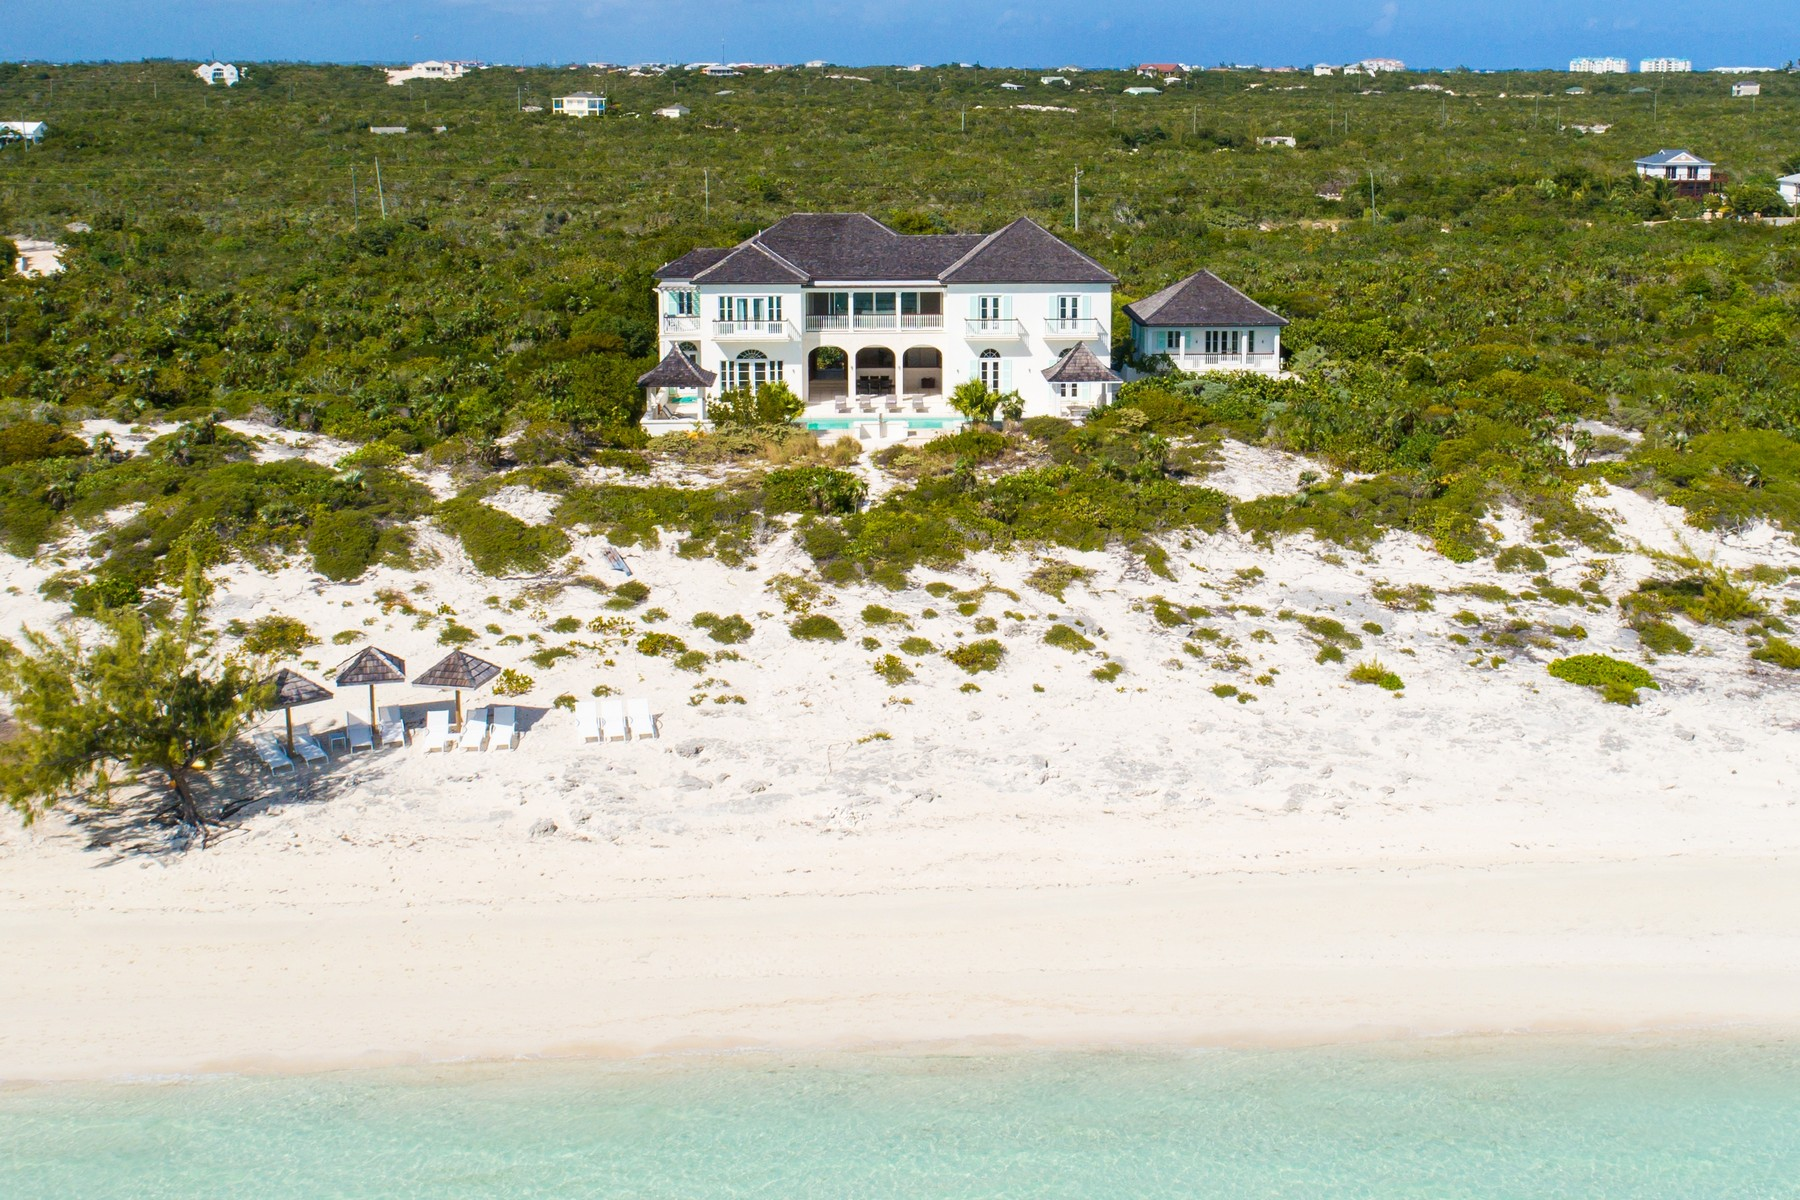 Single Family Home for Sale at Long Bay House Beachfront Long Bay, TKCA 1ZZ Turks And Caicos Islands